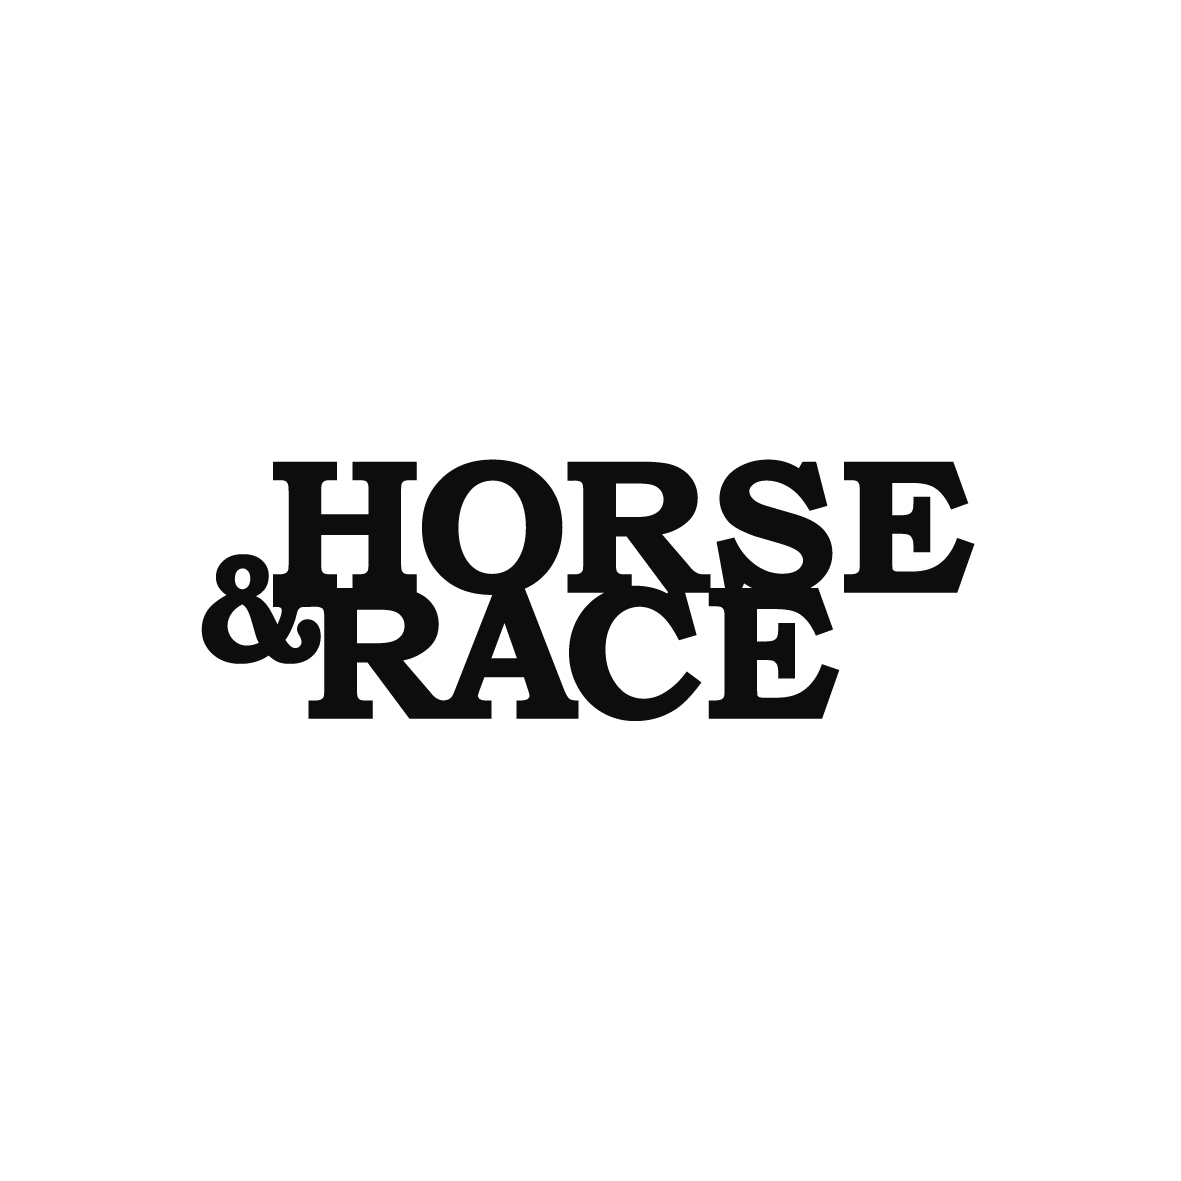 Horse and race